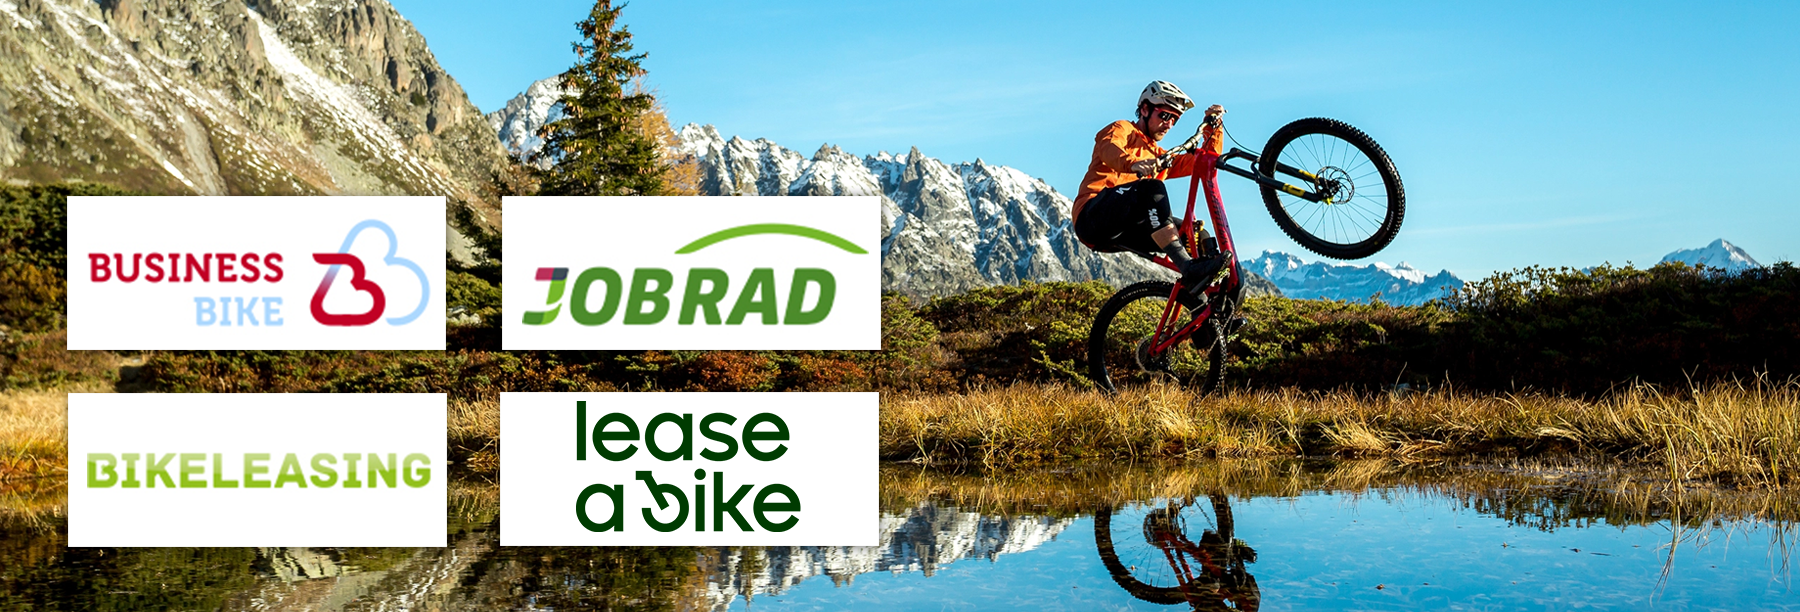 Fahrrad leasen - Business Bike, Job Rad, Lease a Bike & Bikeleasing